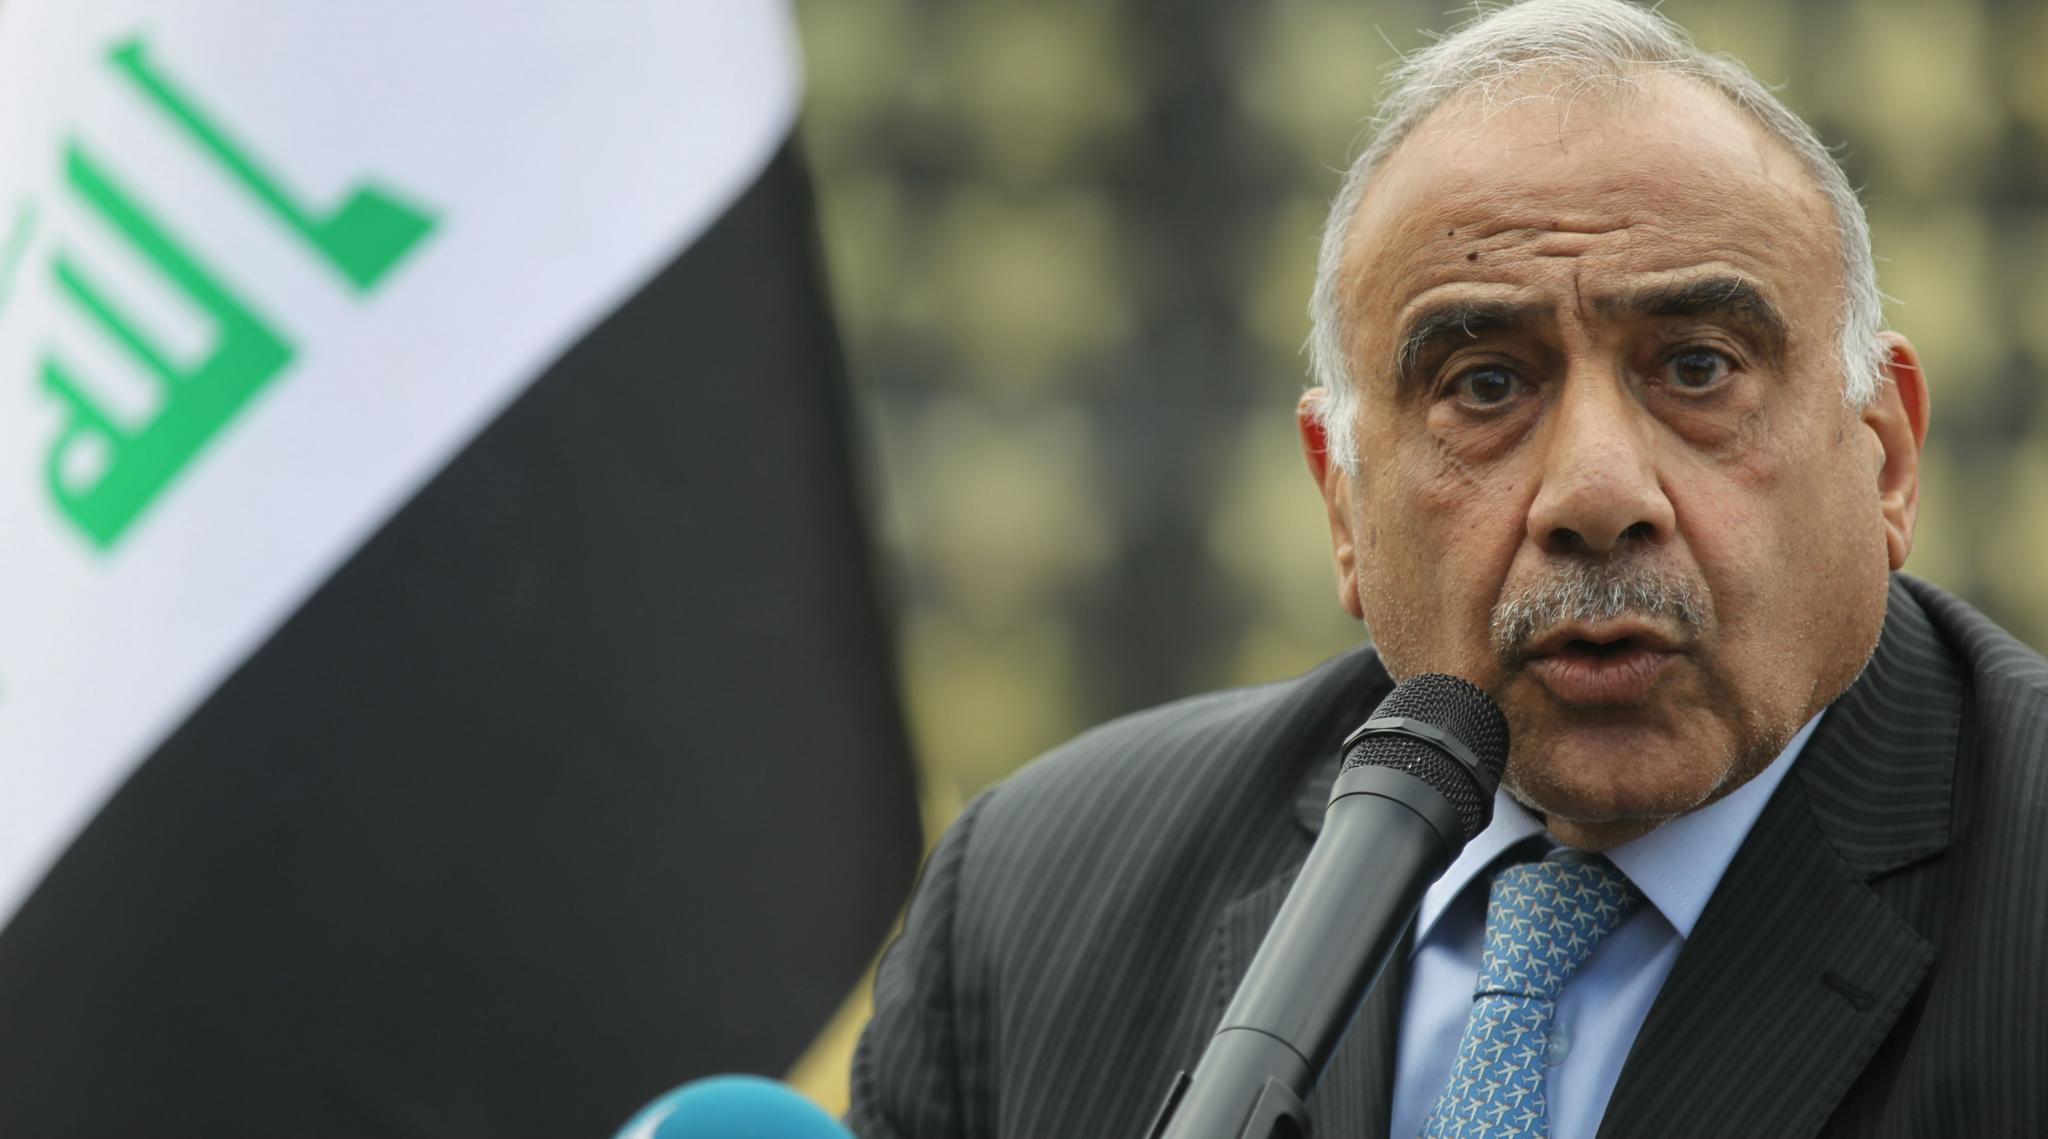 Adel Abdel Mahdi to Resign as Iraq PM After Protests That Claimed More Than 400 Lives